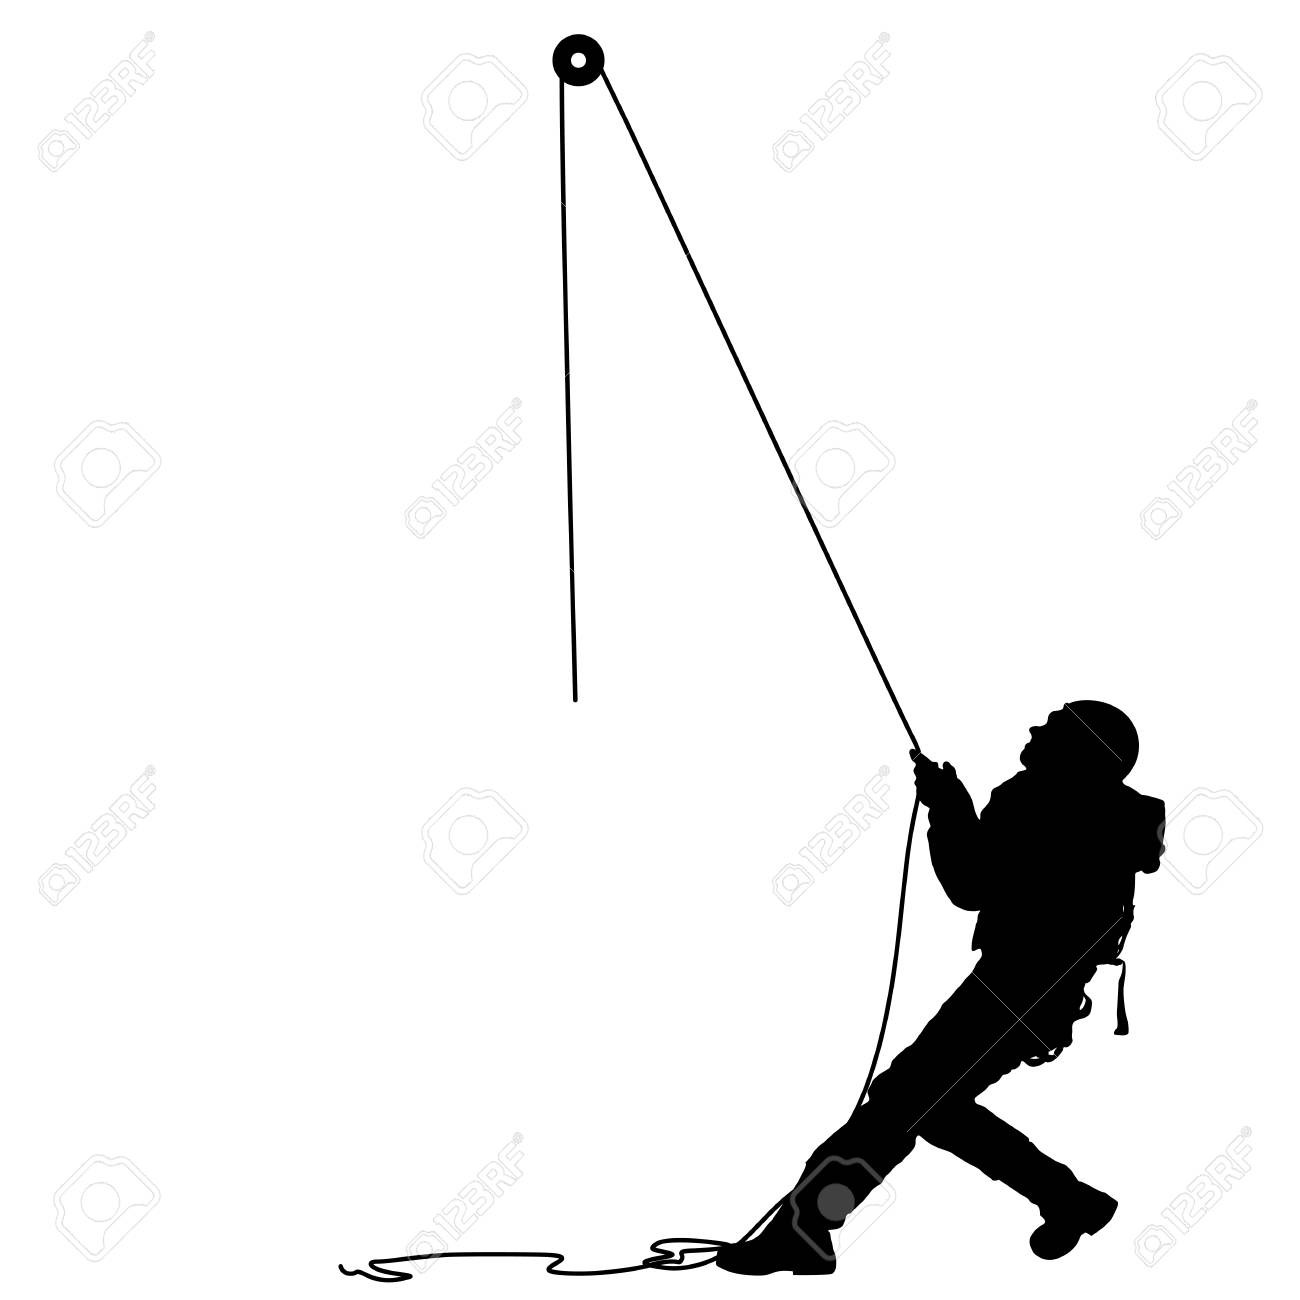 Black Silhouette Craftsman Pulling Rope On White Background 1300x1300